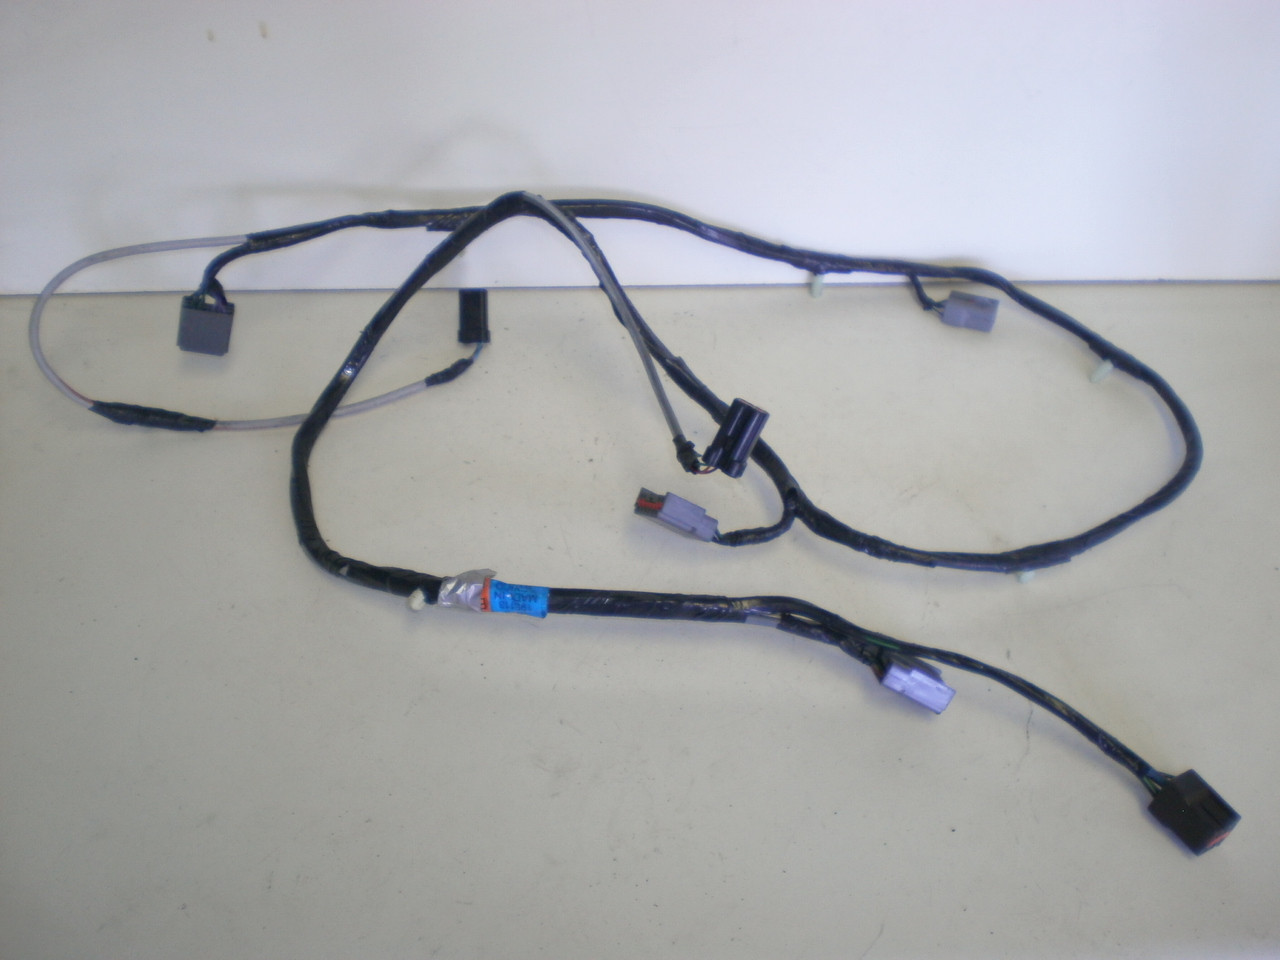 1994 2004 Ford Mustang Rear Mach 460 Amps Amplifiers Sterio 2002 Radio Wiring Larger More Photos